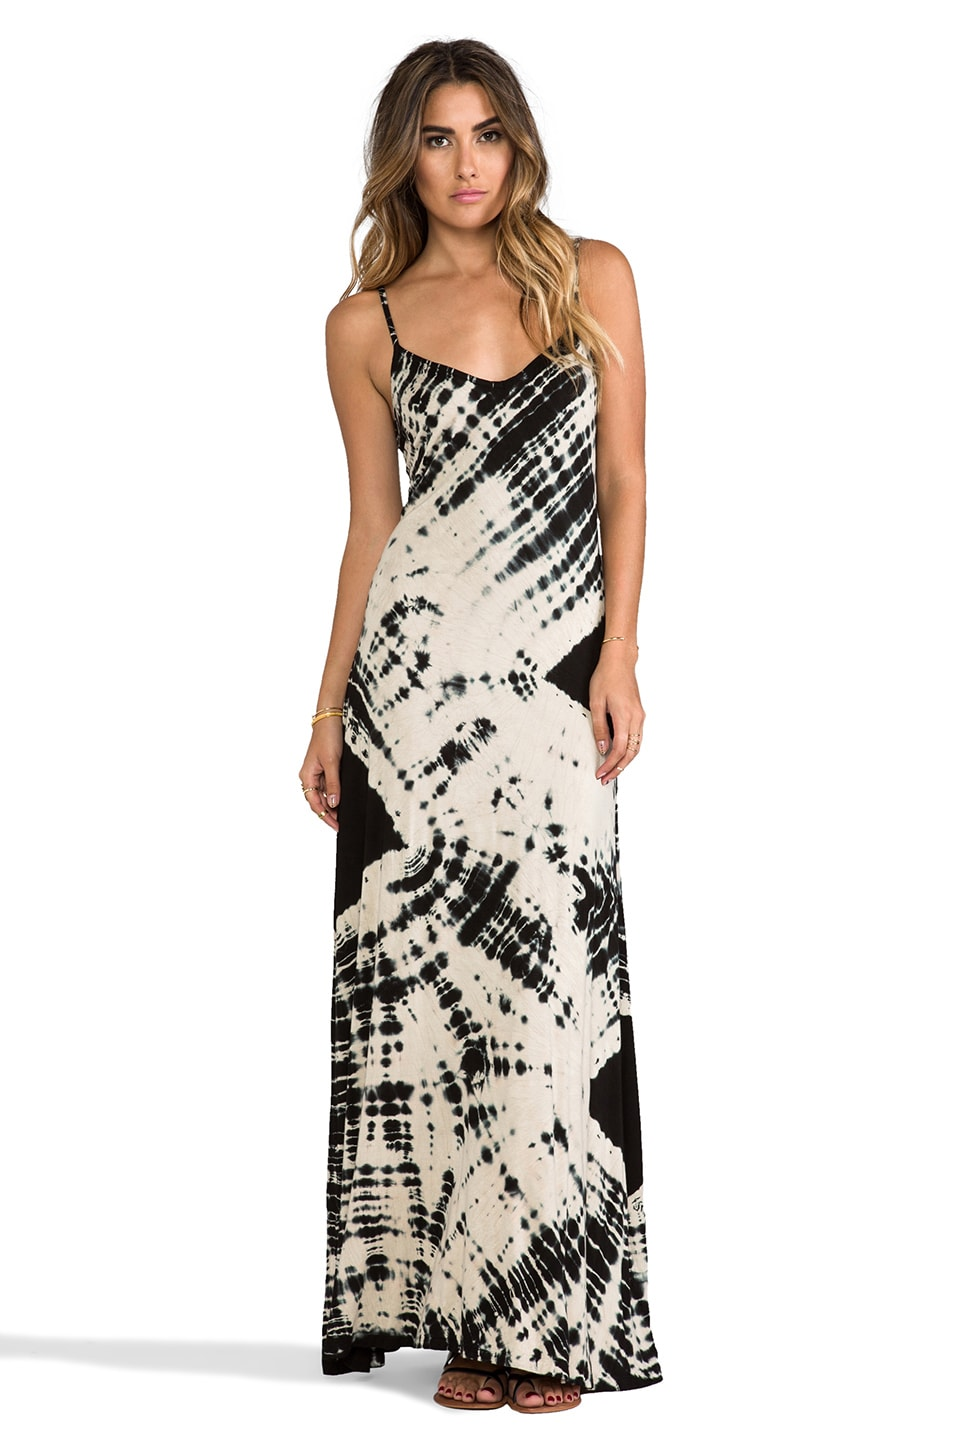 Gypsy 05 Deep V Maxi Dress in Black & Bone